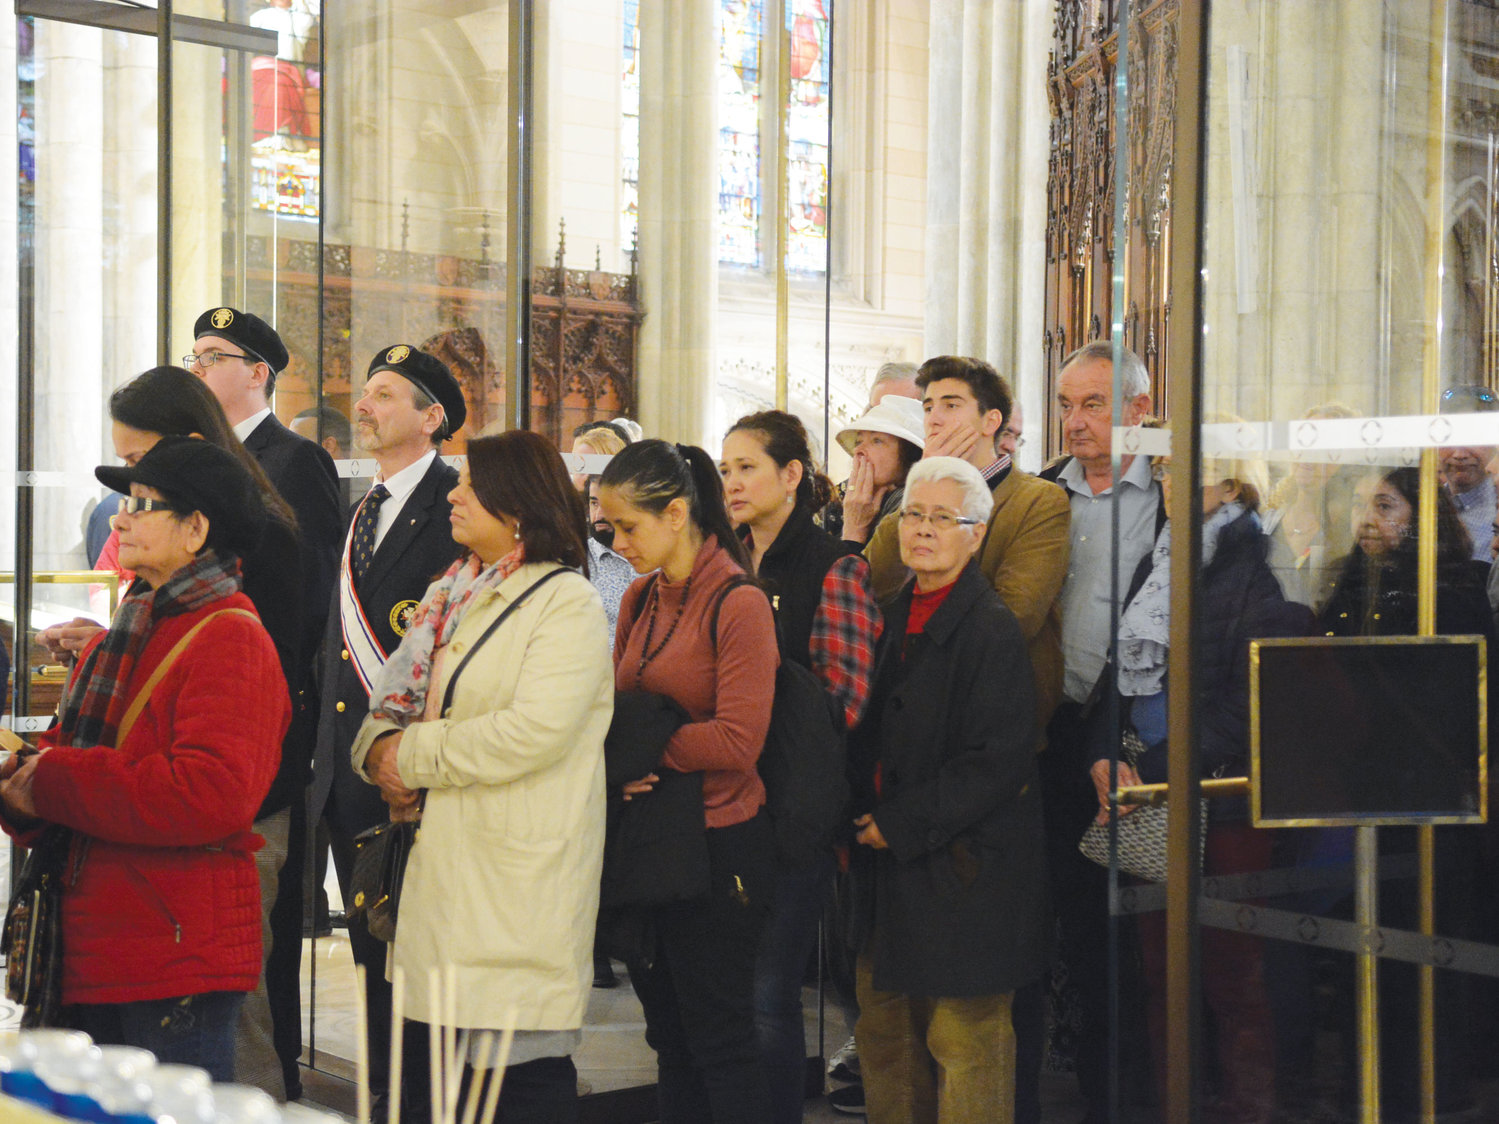 The faithful patiently wait their turn to visit and venerate the first-class relic of St. John Vianney inside the Lady Chapel of St. Patrick's Cathedral on April 7.